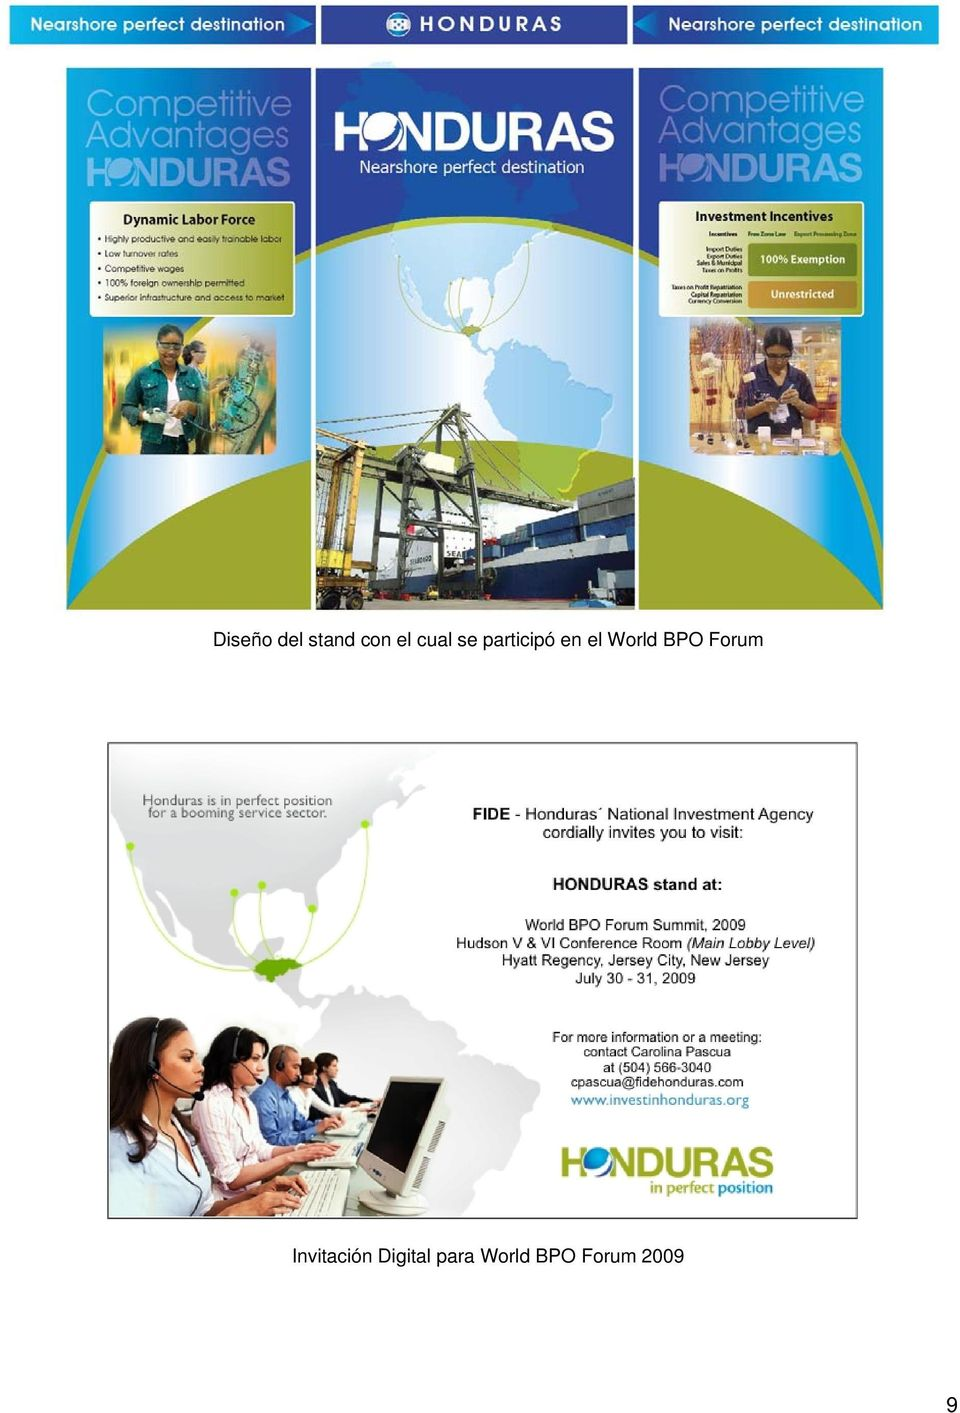 World BPO Forum Invitación